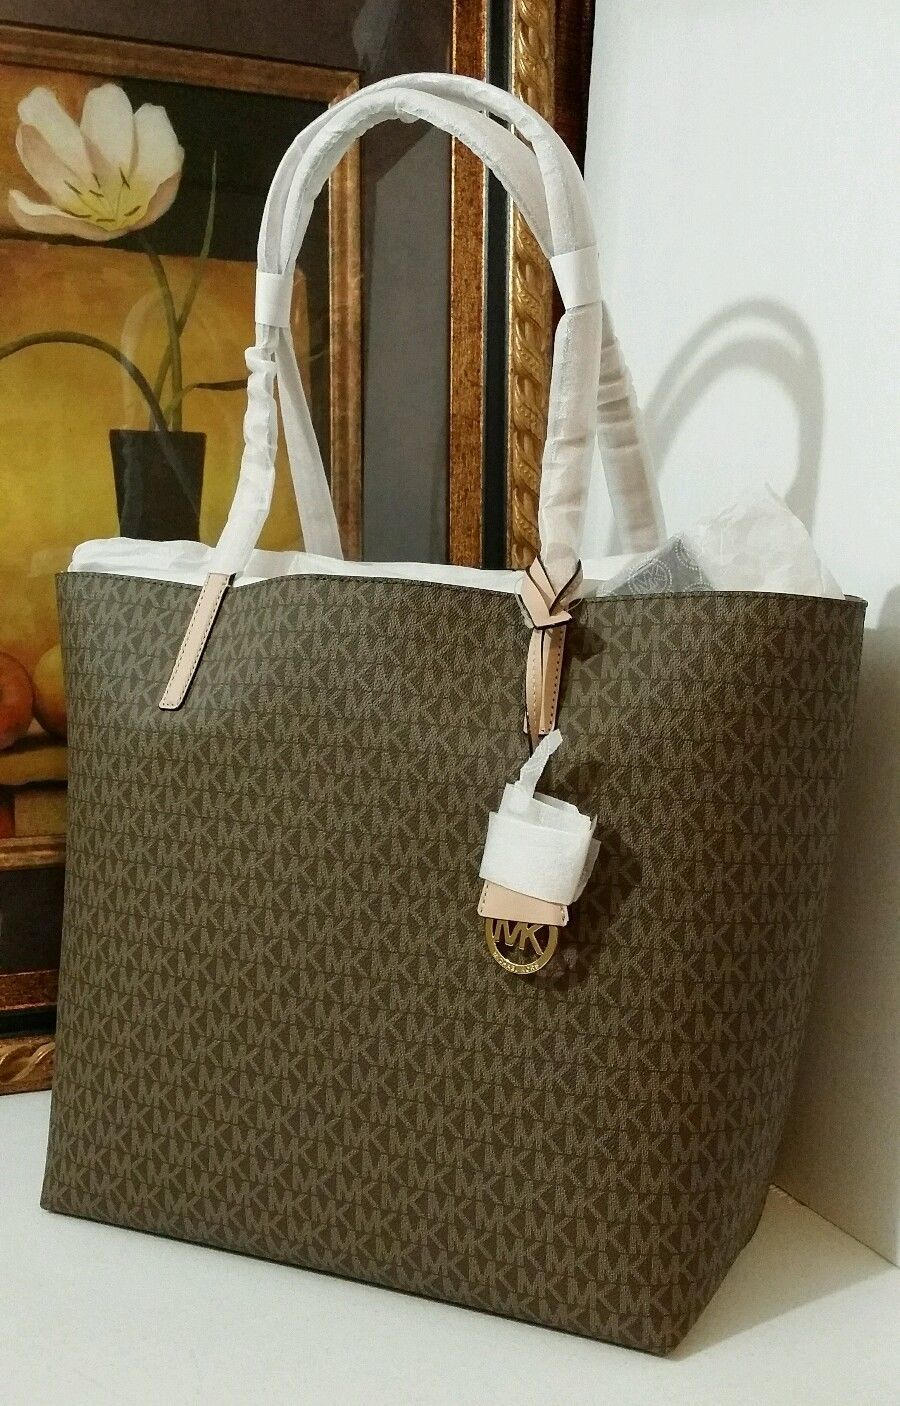 NWT MICHAEL KORS Hayley Large East West PVC Leather Tote Mocha/Bisque